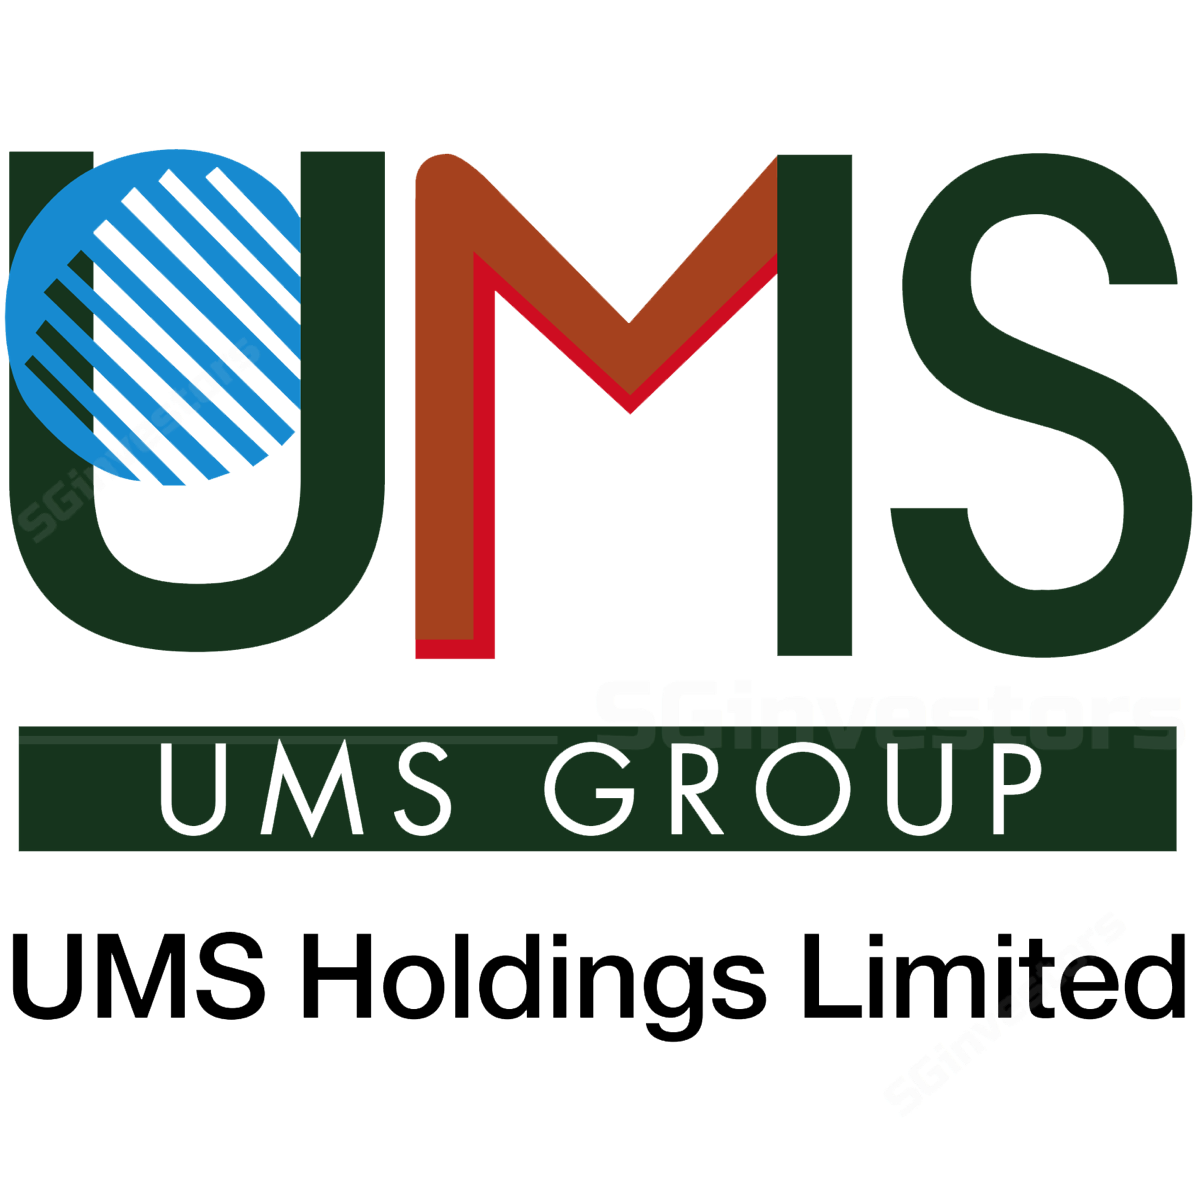 UMS Holdings Ltd - CIMB Research 2016-11-11: We see qoq earnings momentum